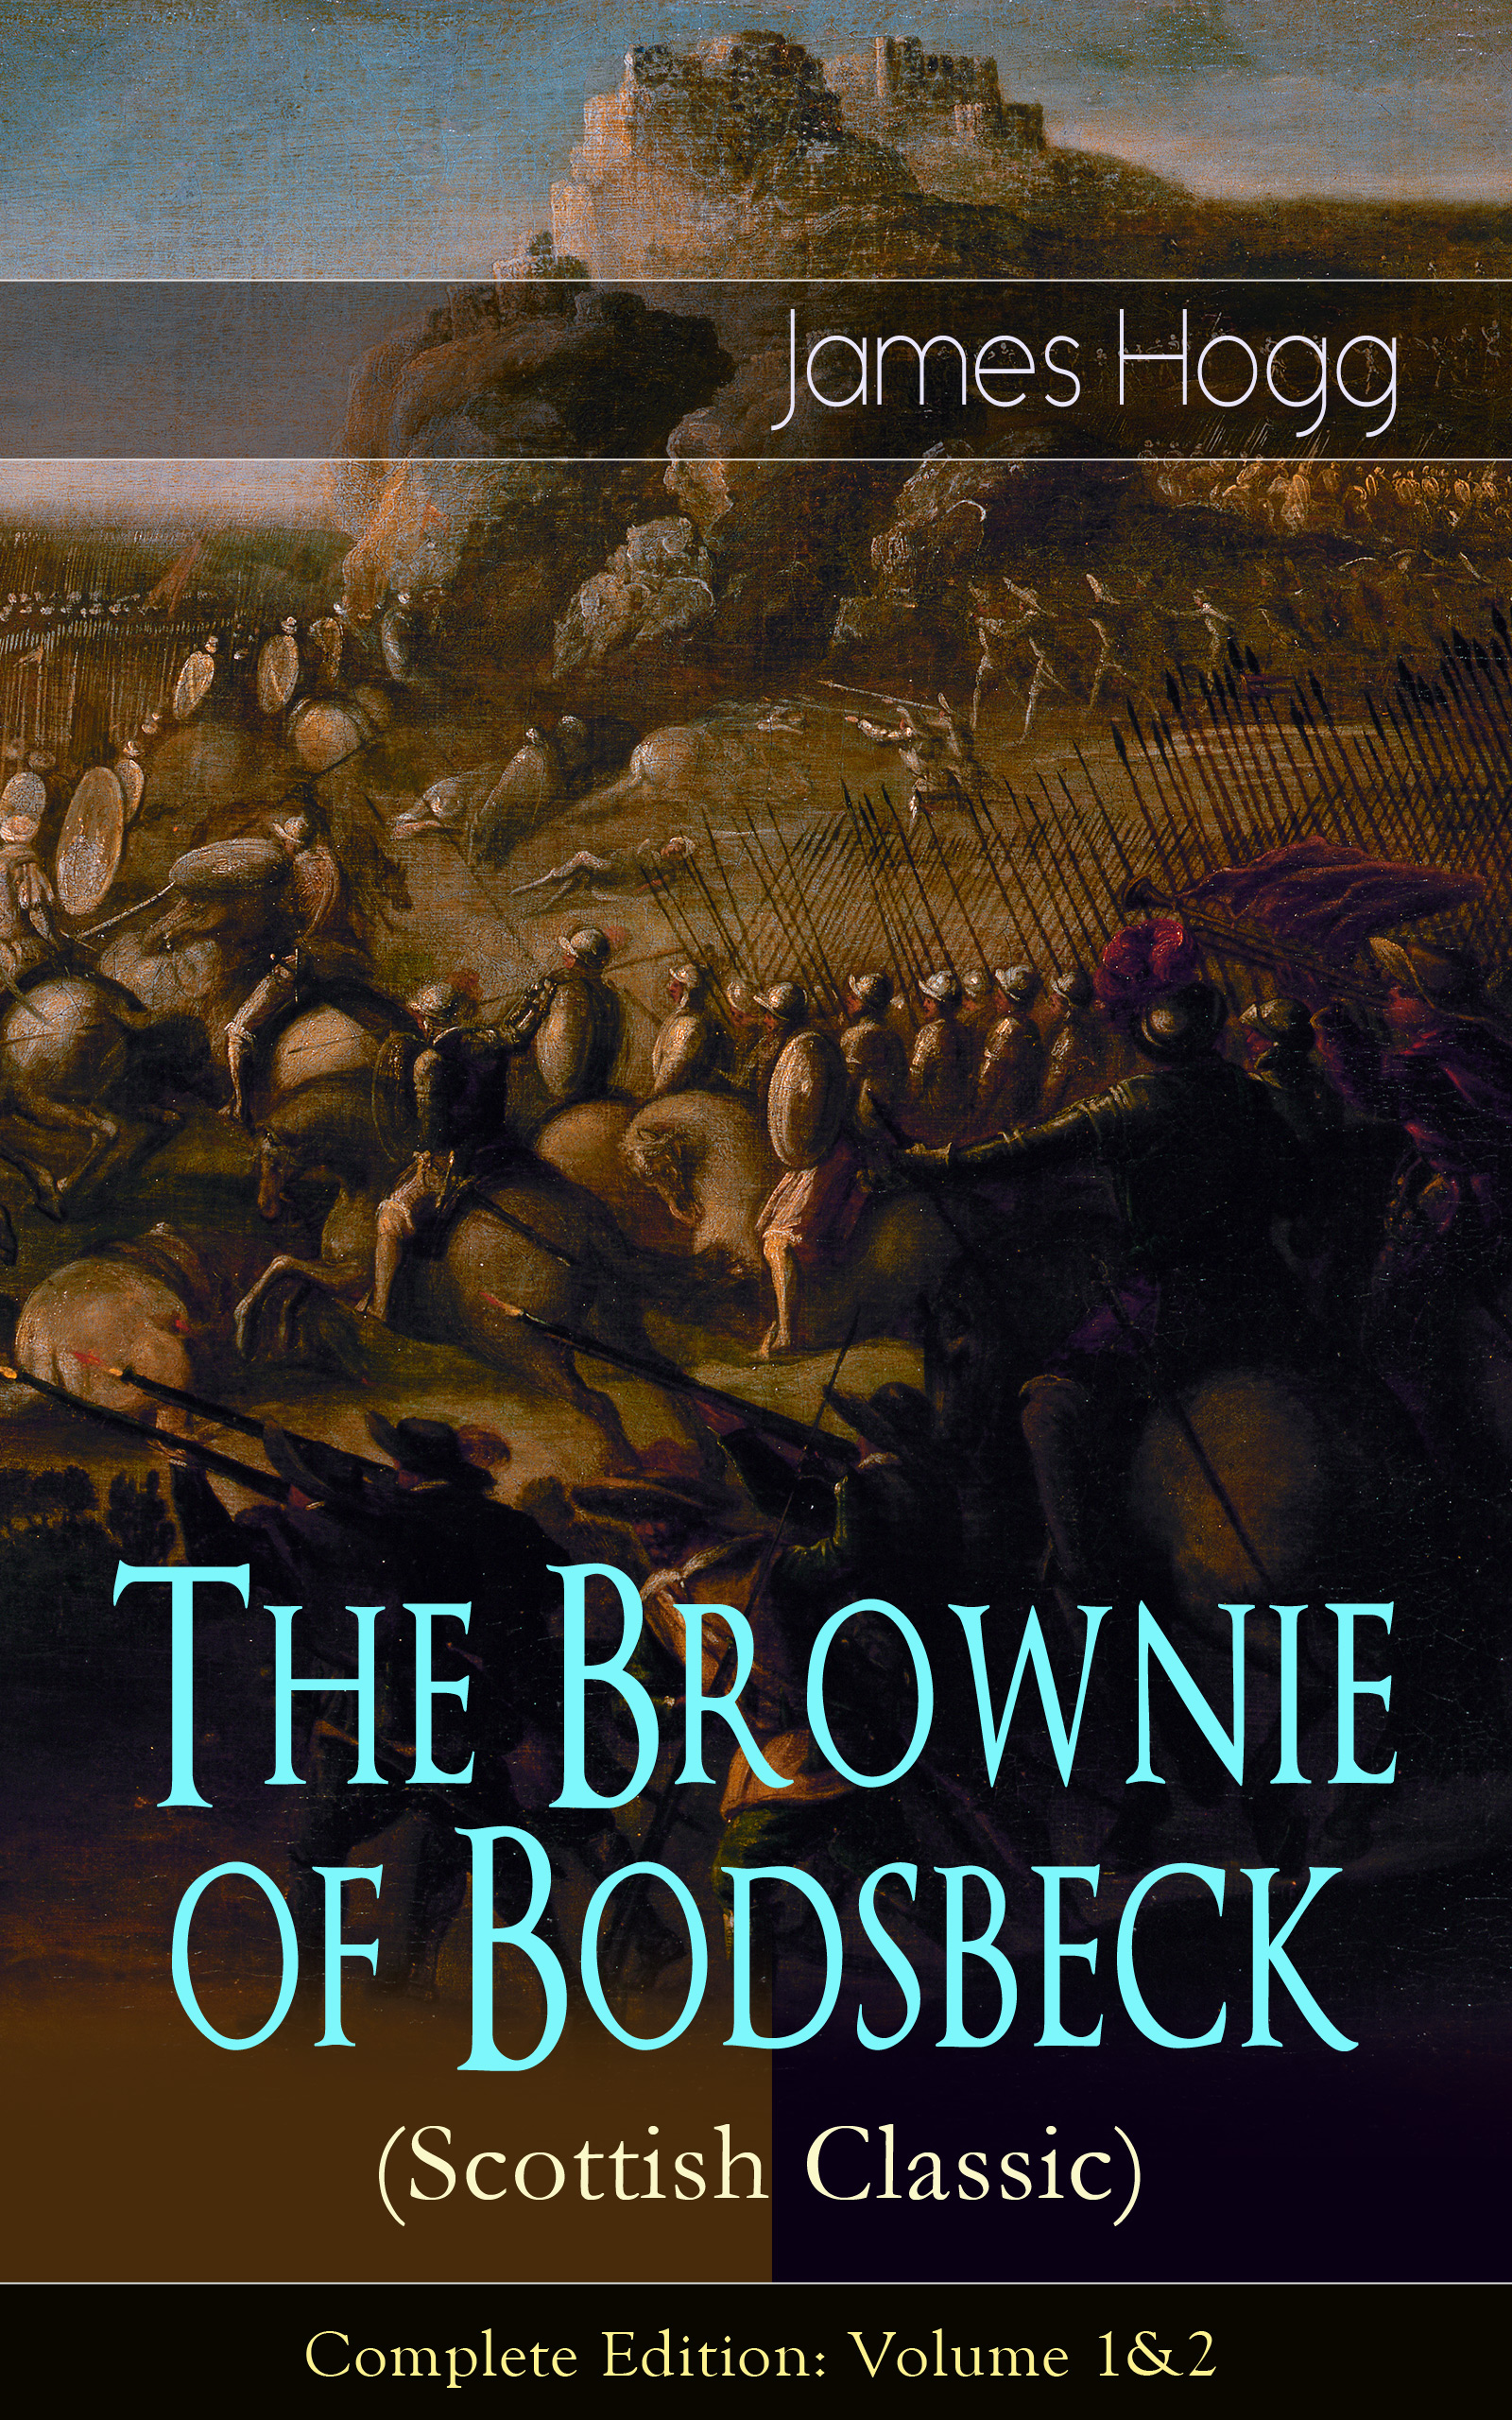 James Hogg The Brownie of Bodsbeck (Scottish Classic) - Complete Edition: Volume 1&2